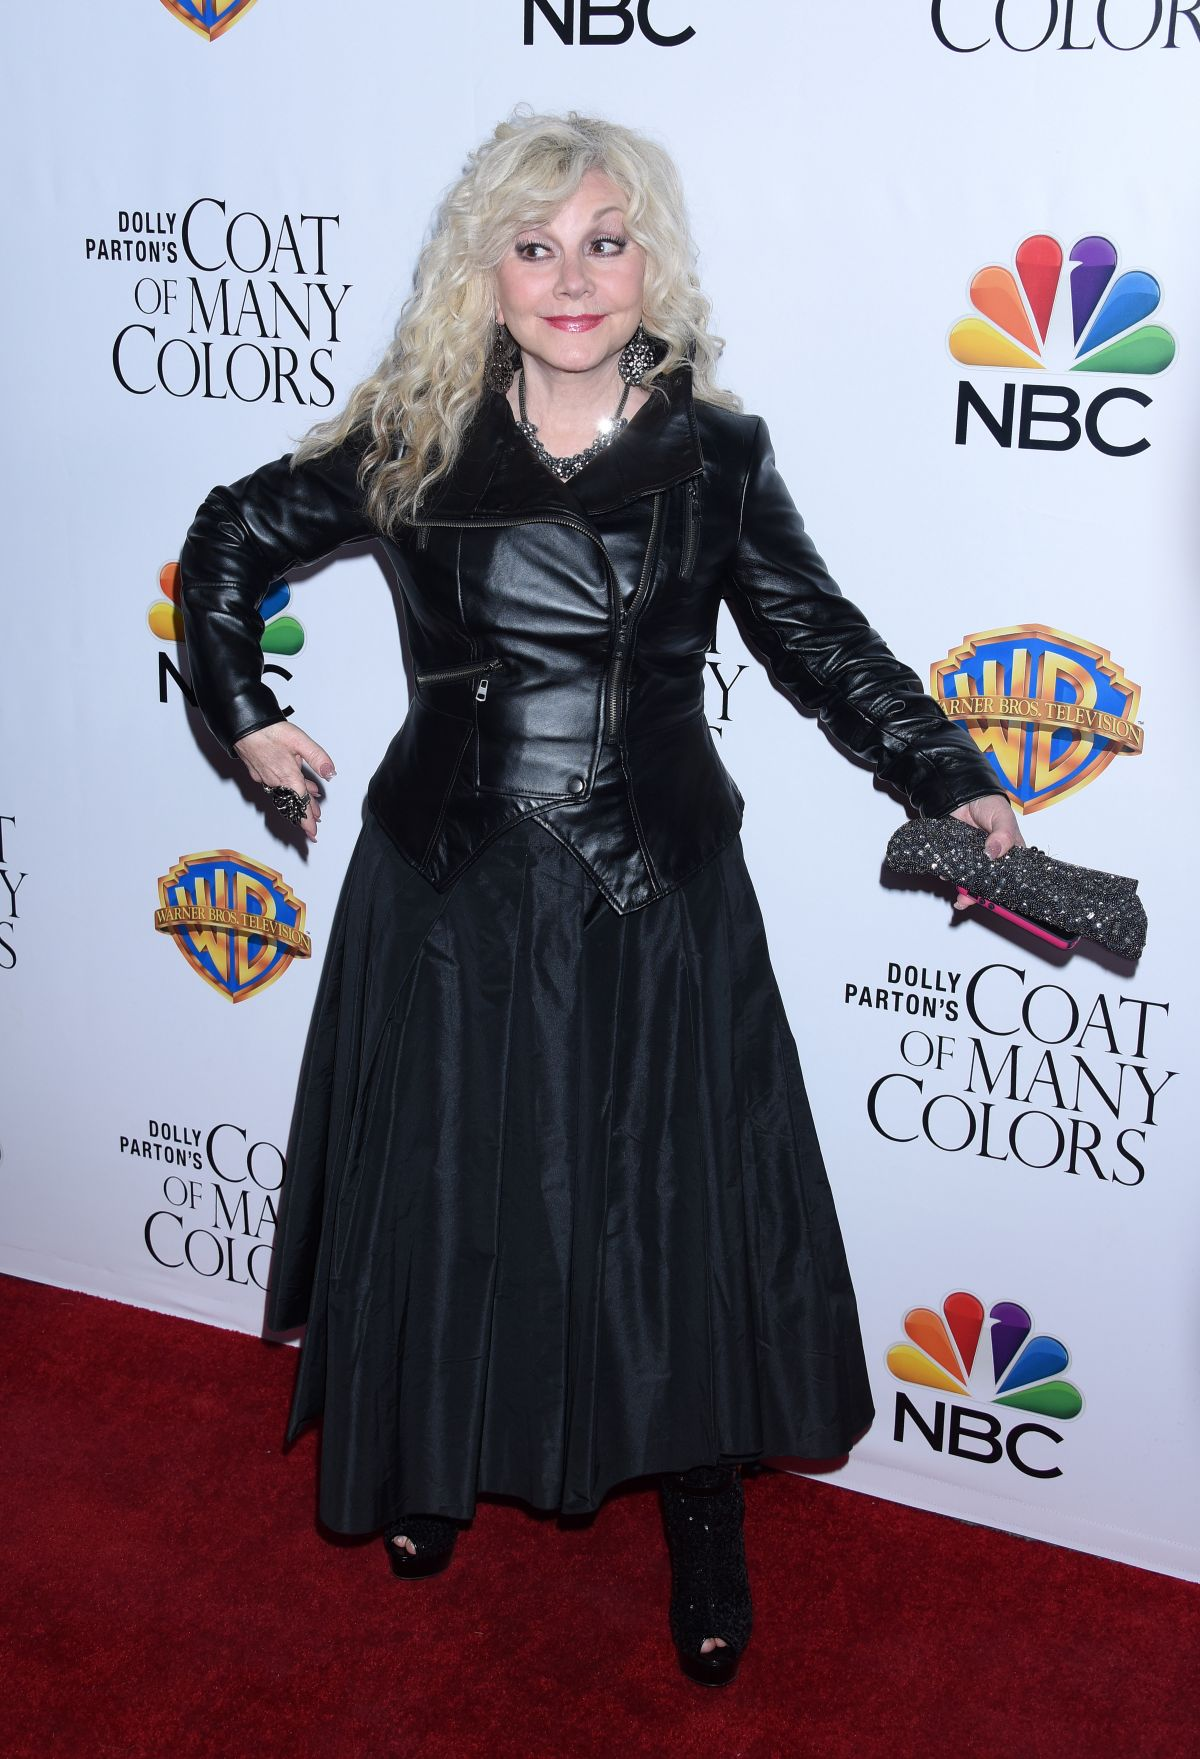 STELLA PARTON at Dolly Parton's Coat of Many Colors Premiere in Hollywood